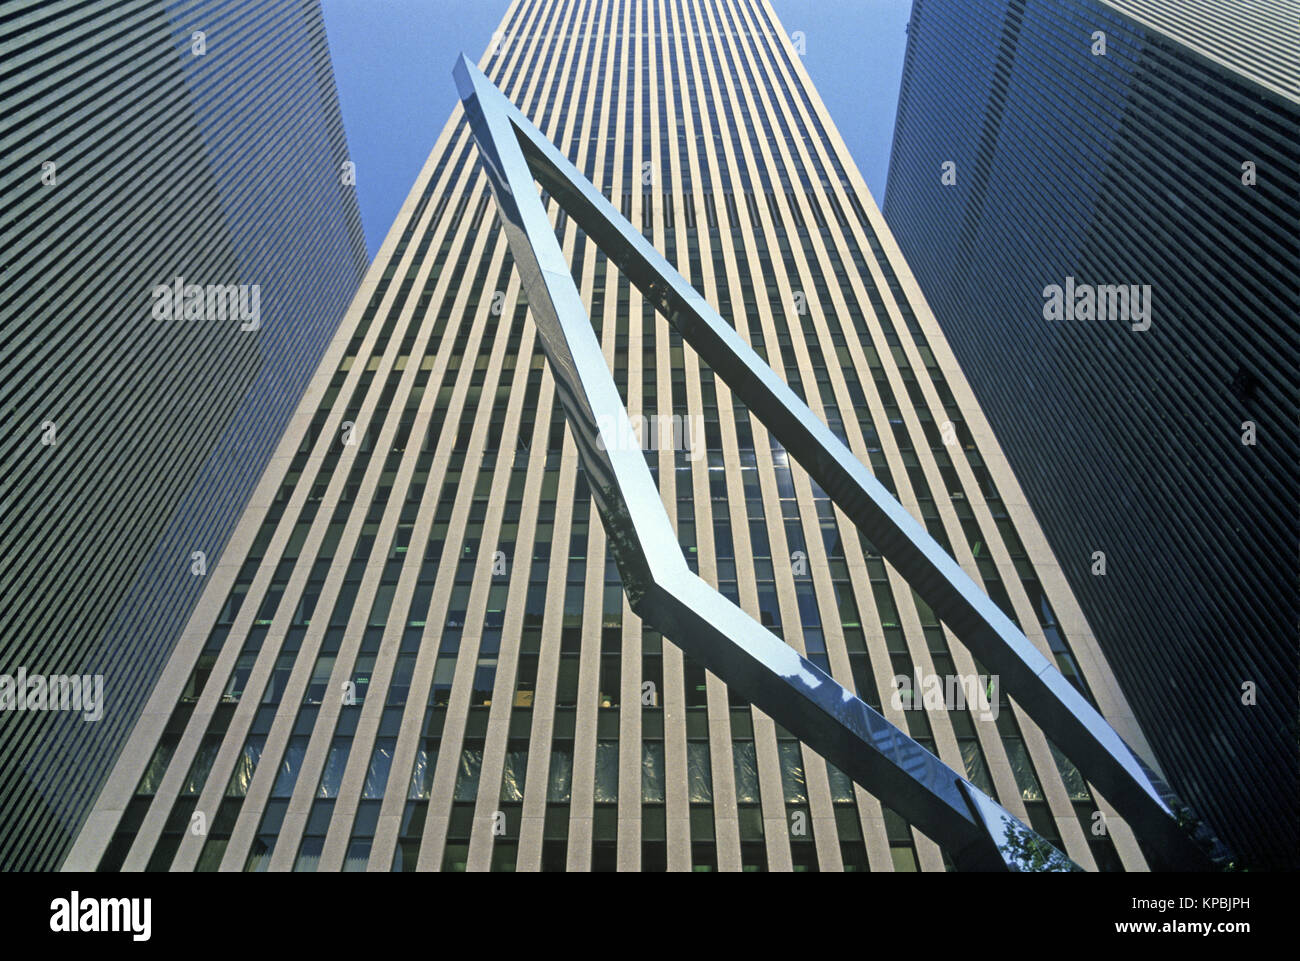 80s Building Stock Photos Amp 80s Building Stock Images Alamy